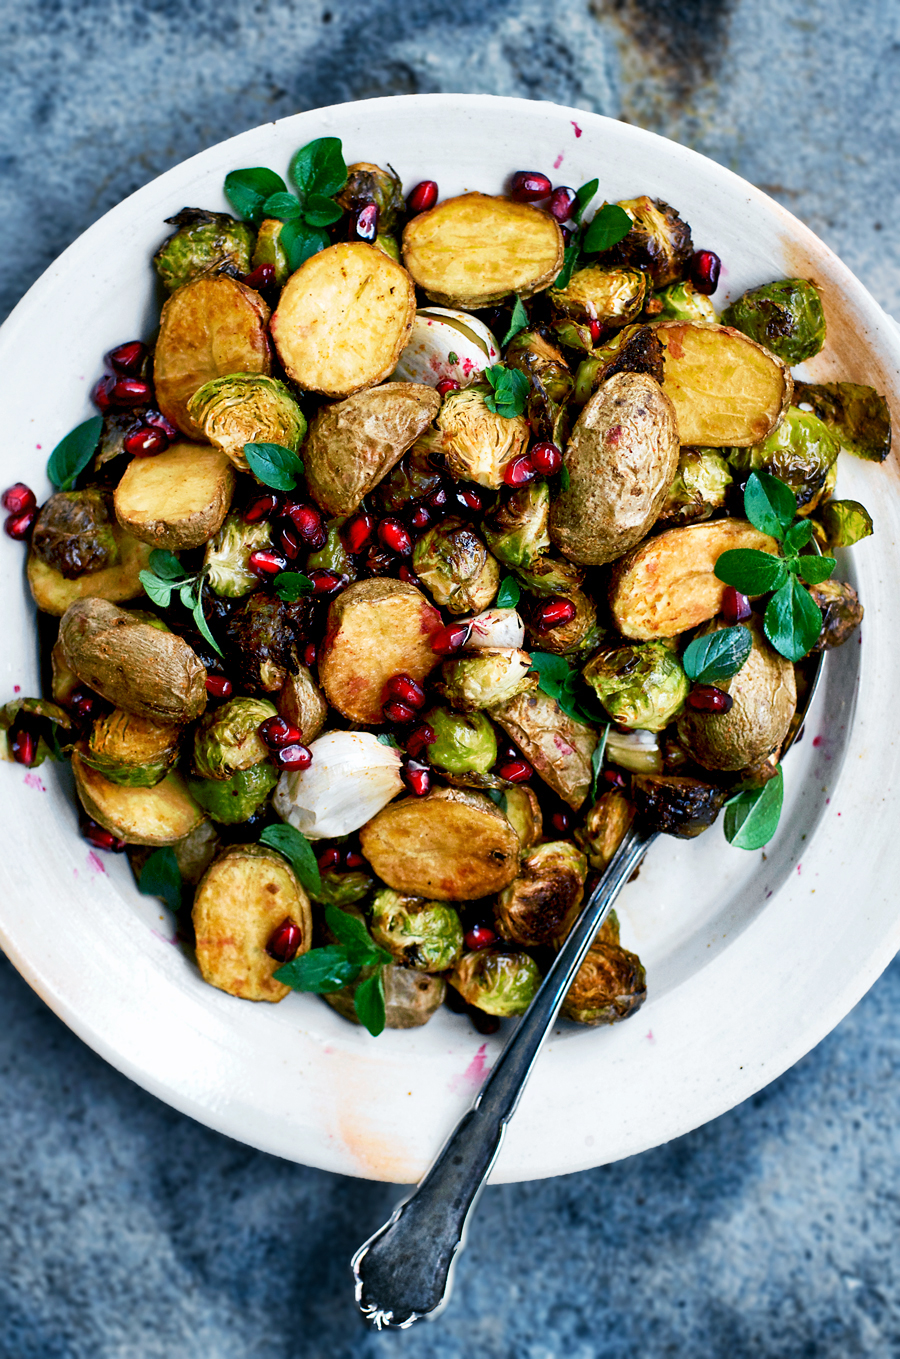 Roasted new potatoes and brussels sprouts, mixed with pomegranate, roasted garlic, and lots of spices, make for a beautiful holiday side dish with festive colours. Meaty brussels sprouts and crispy potatoes combine with bright pops of pomegranate here for a special vegan side.